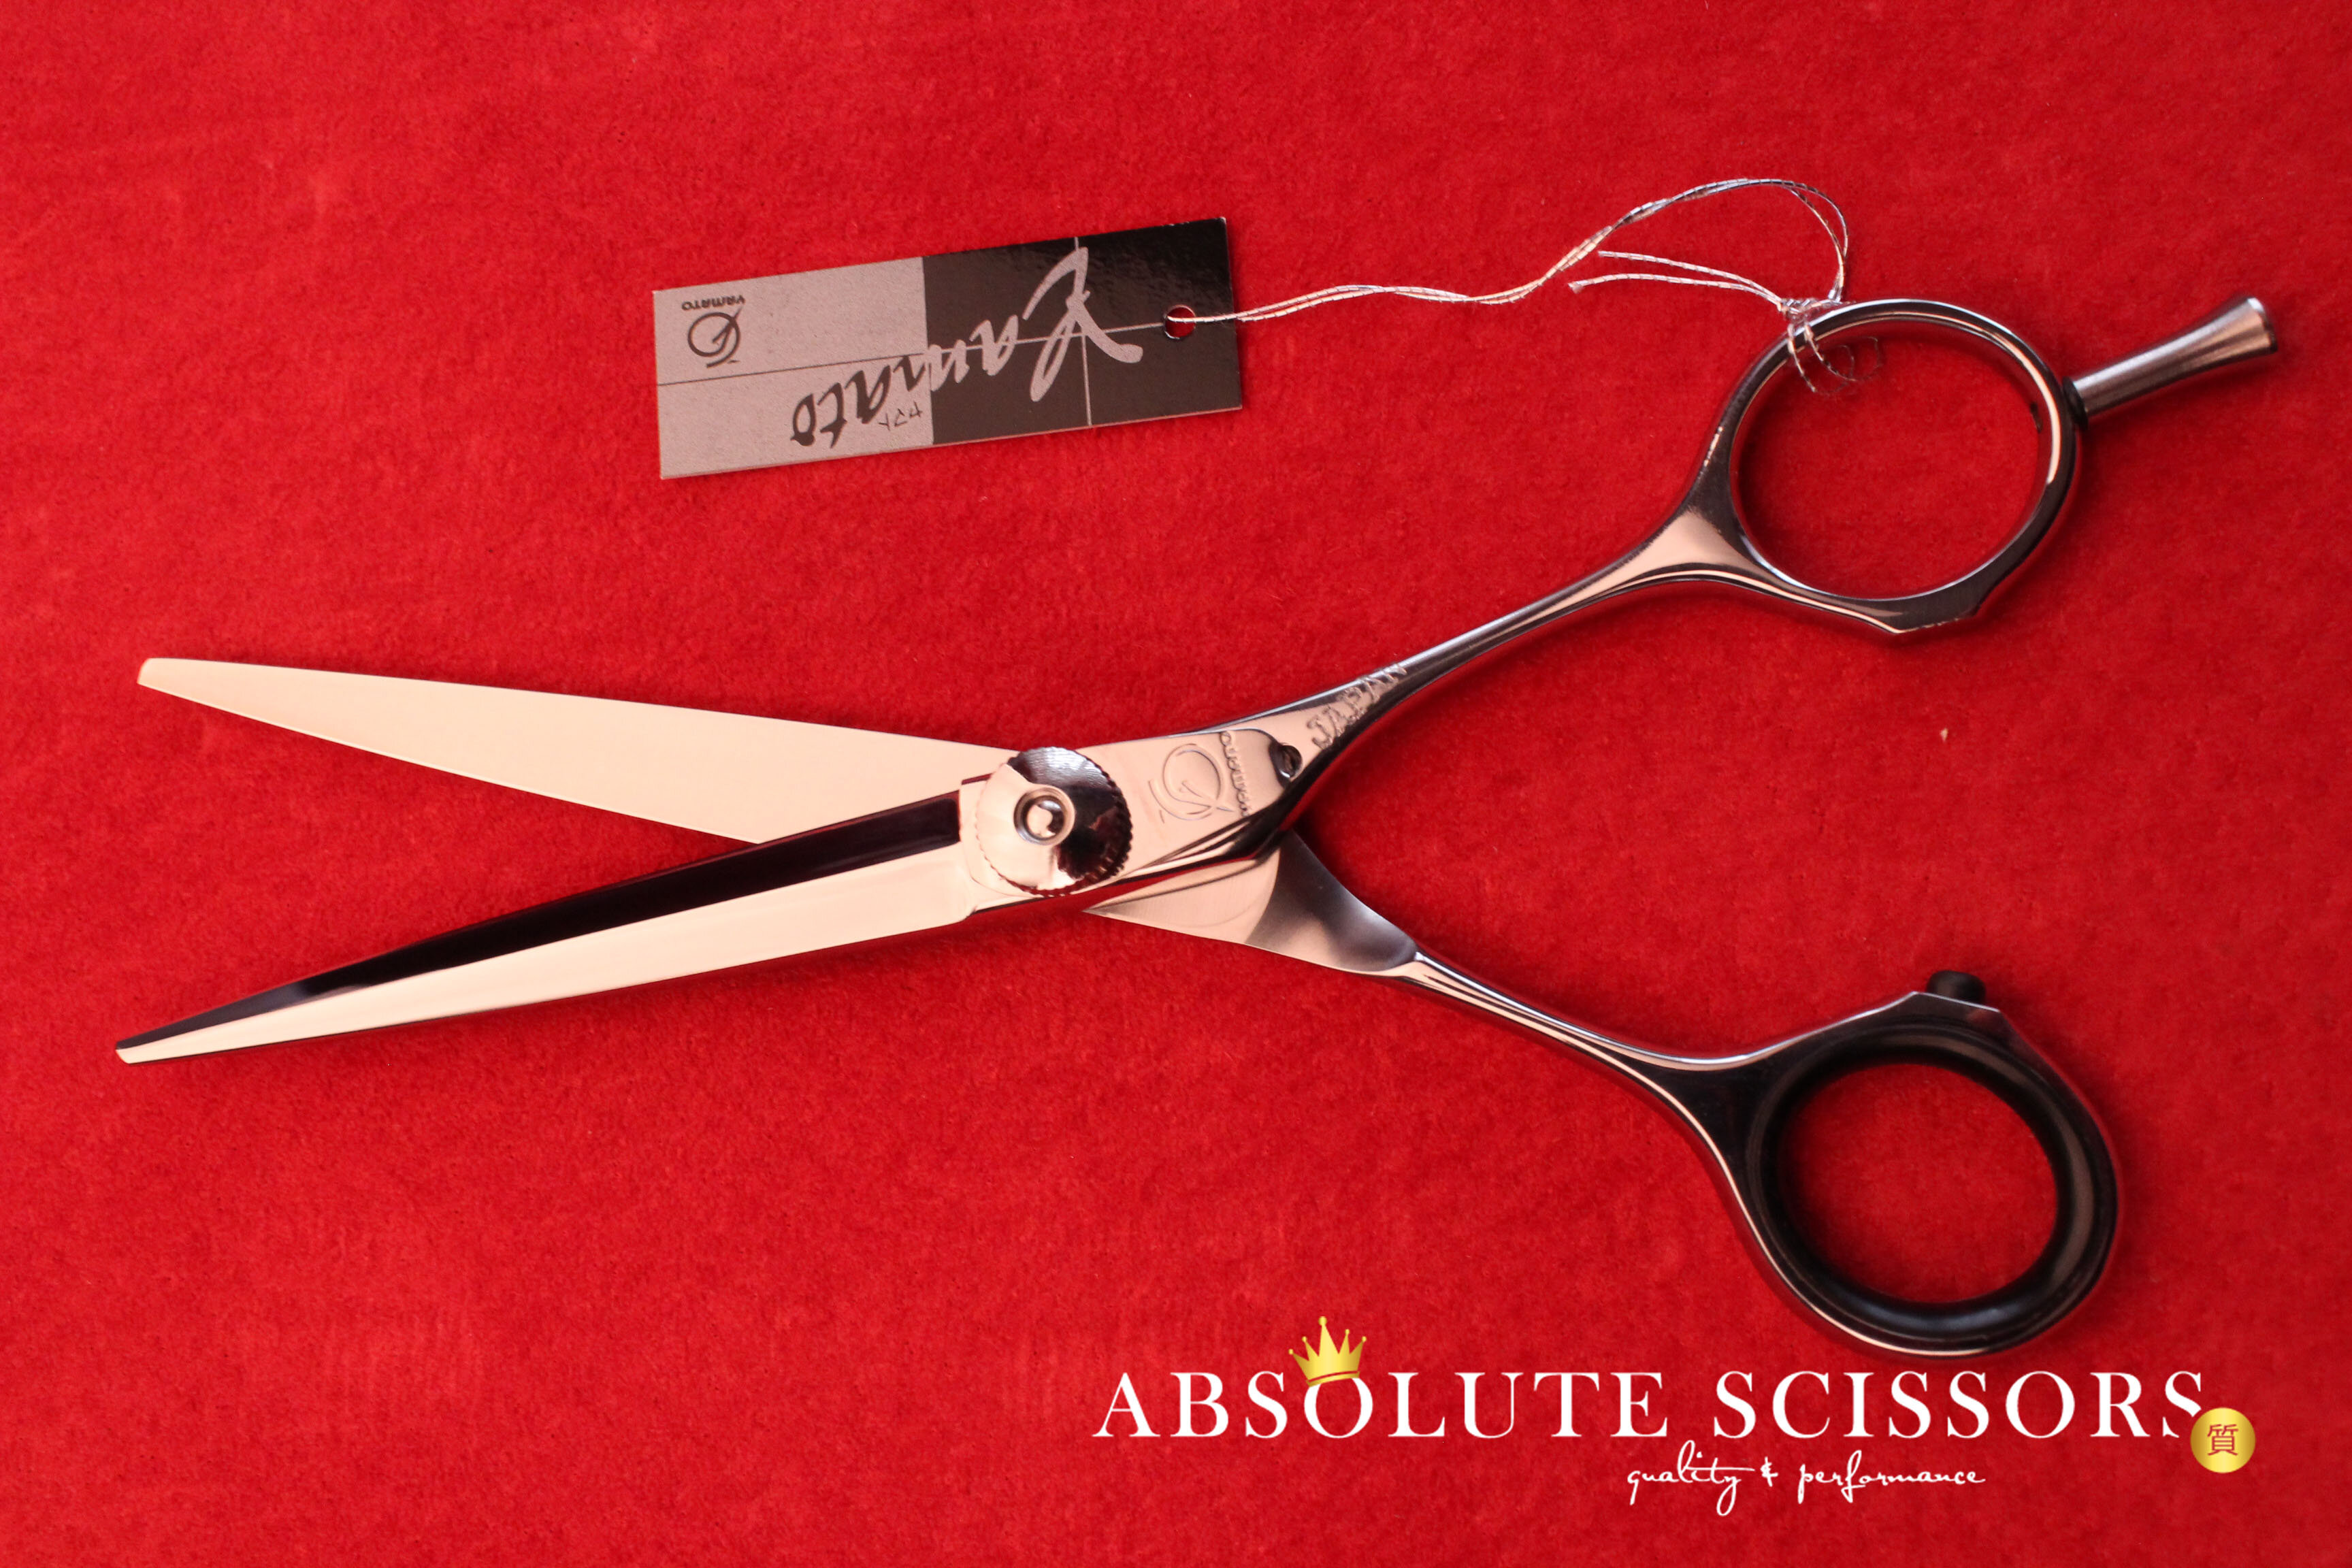 Elite YV60 3677 Yamato scissors size 6 inches.